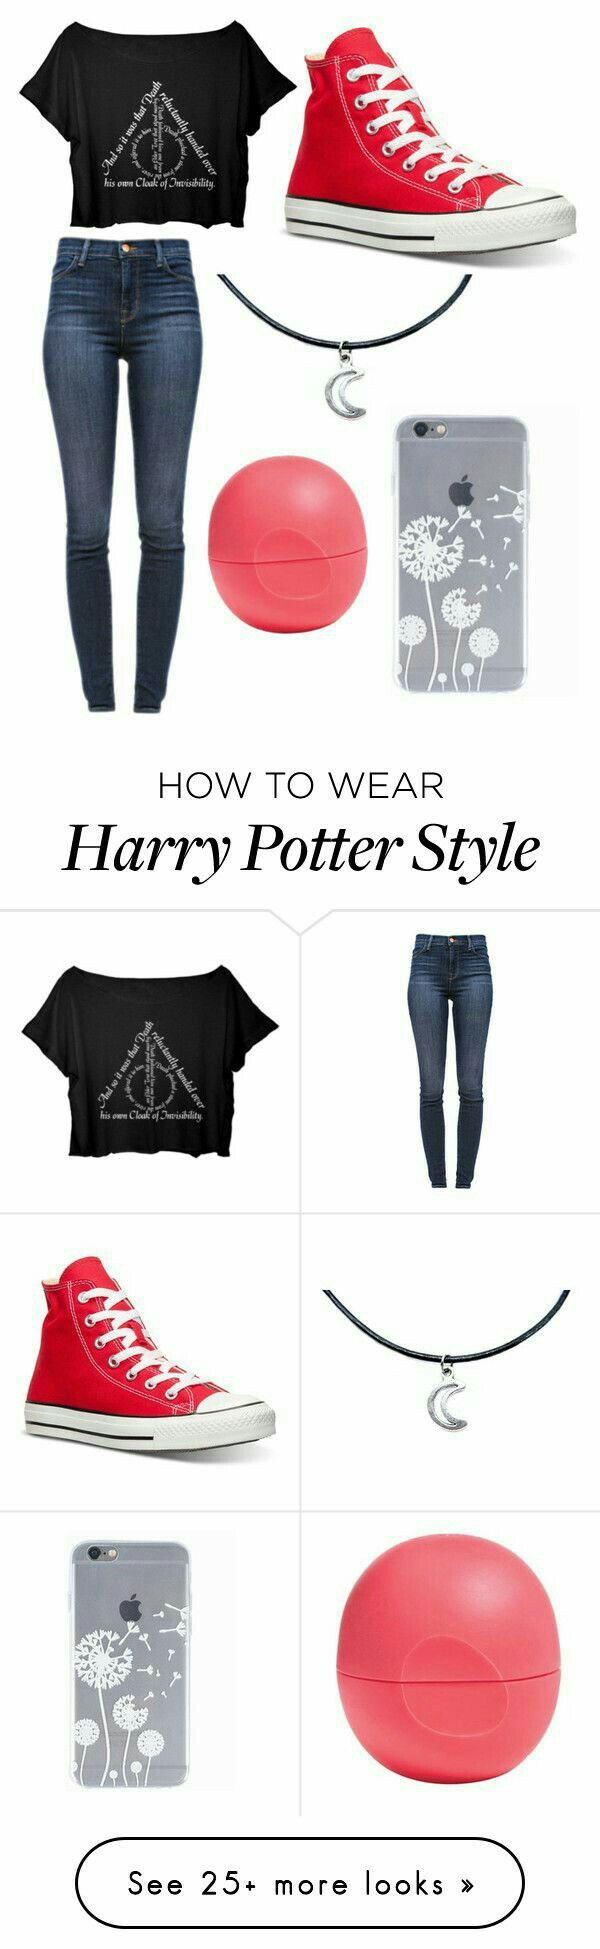 Pin by adia on outfits pinterest